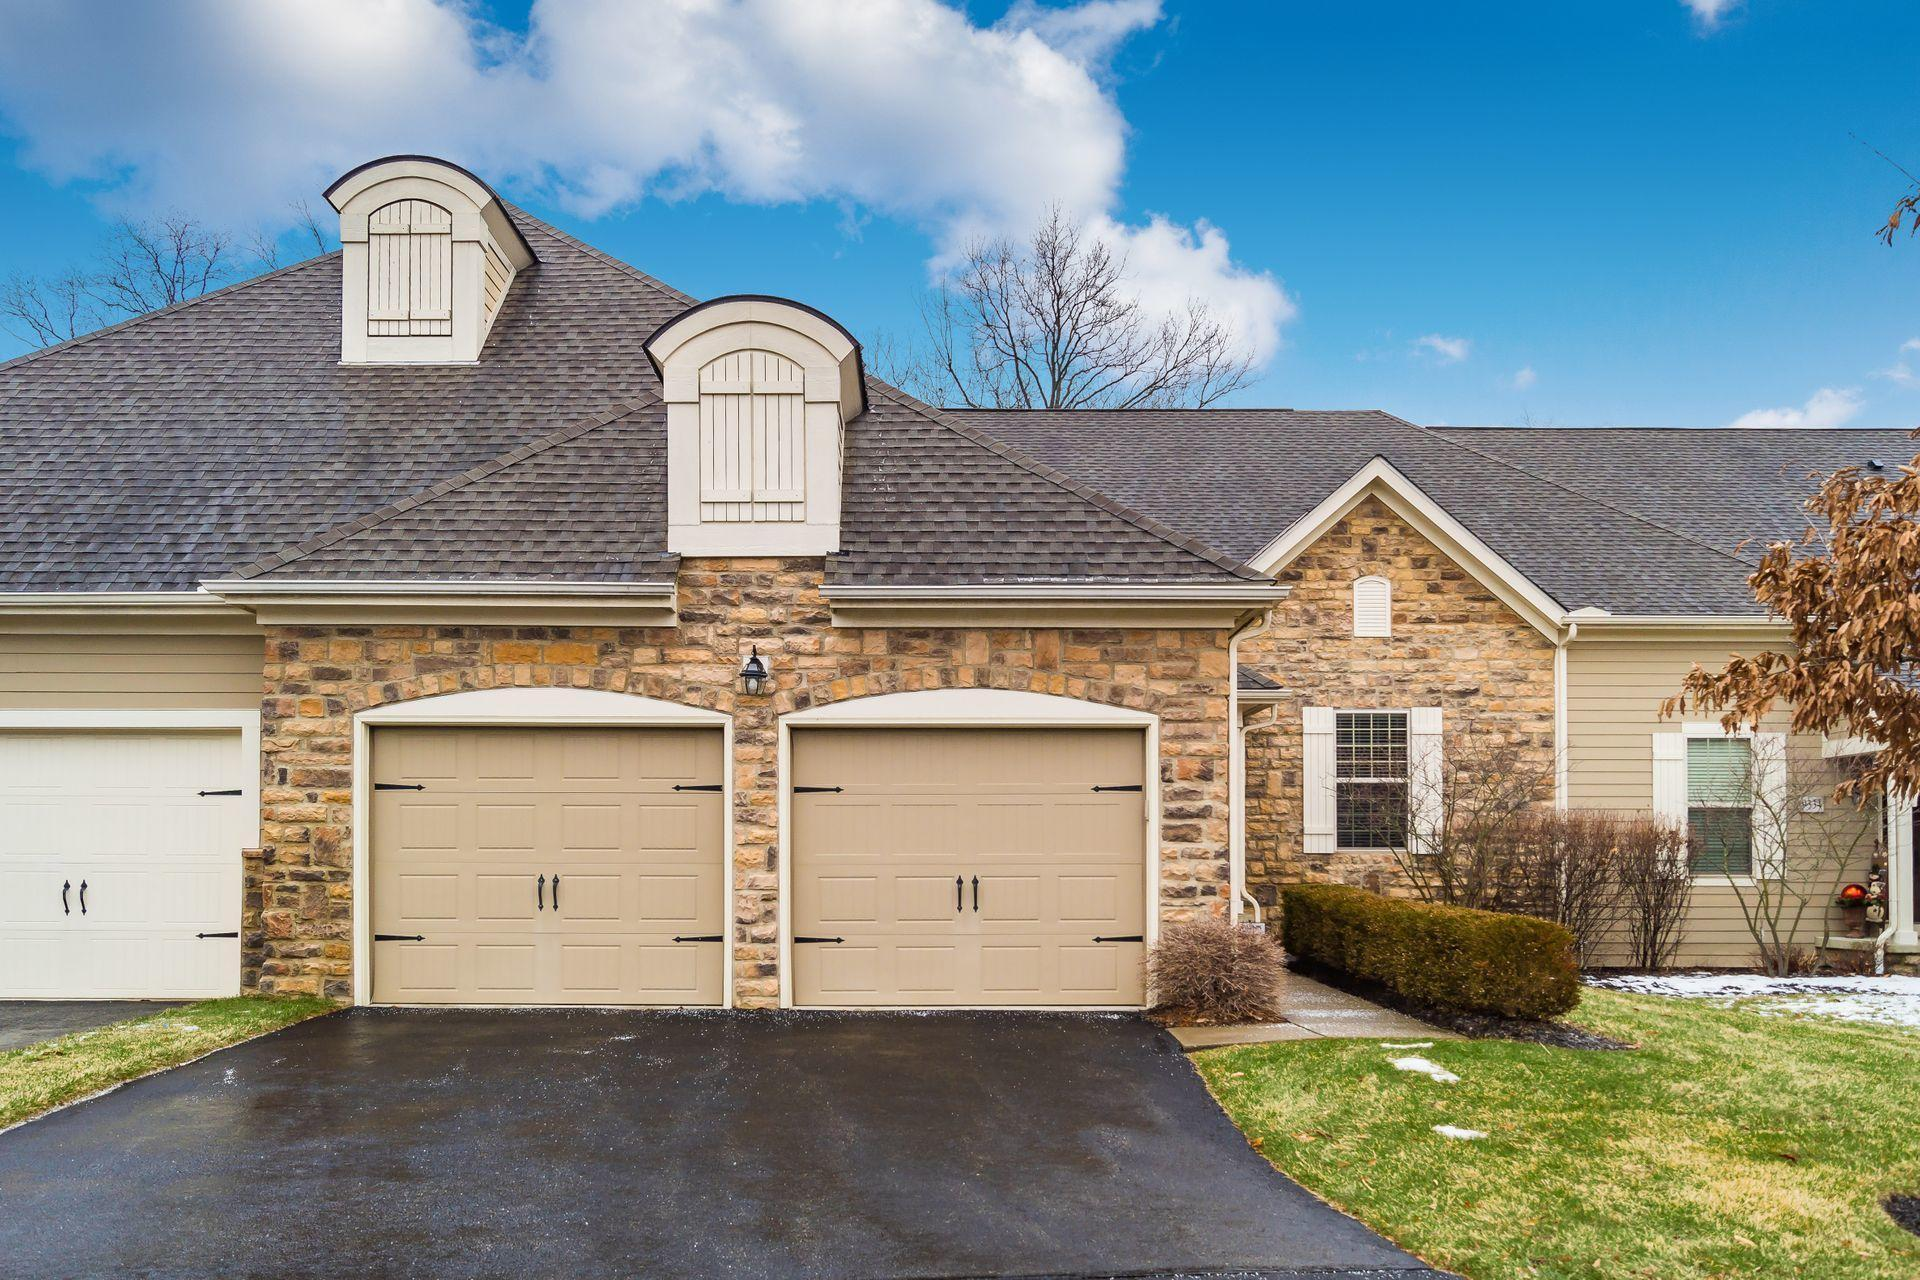 Photo of 9338 Pratolino Villa Drive, Dublin, OH 43016